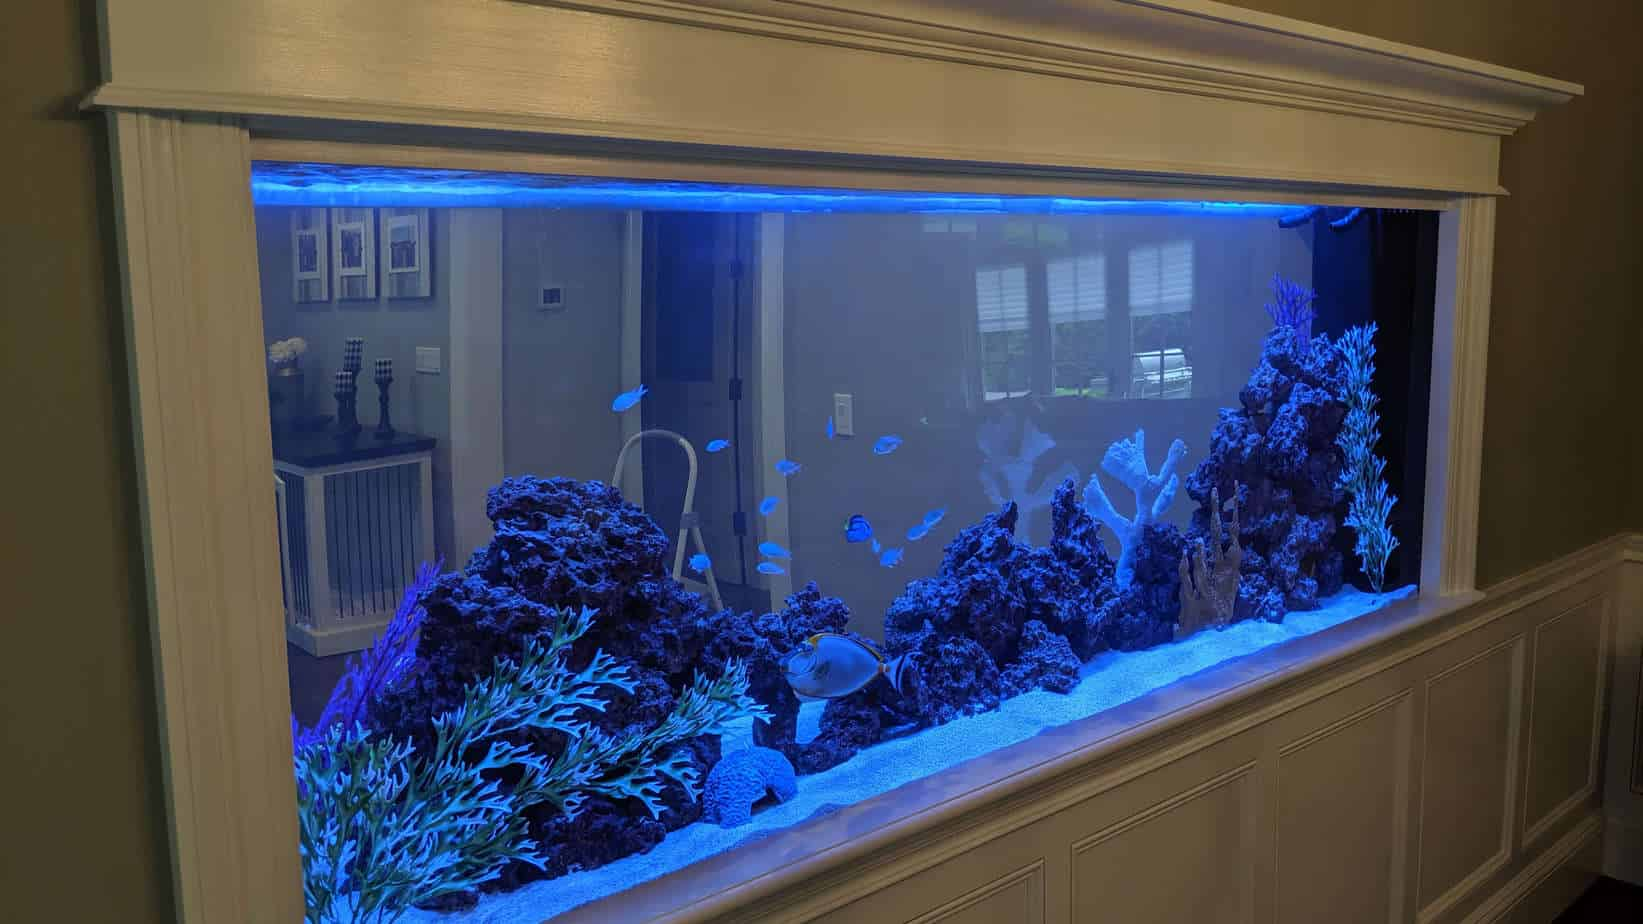 360 gallon See-Through aquarium